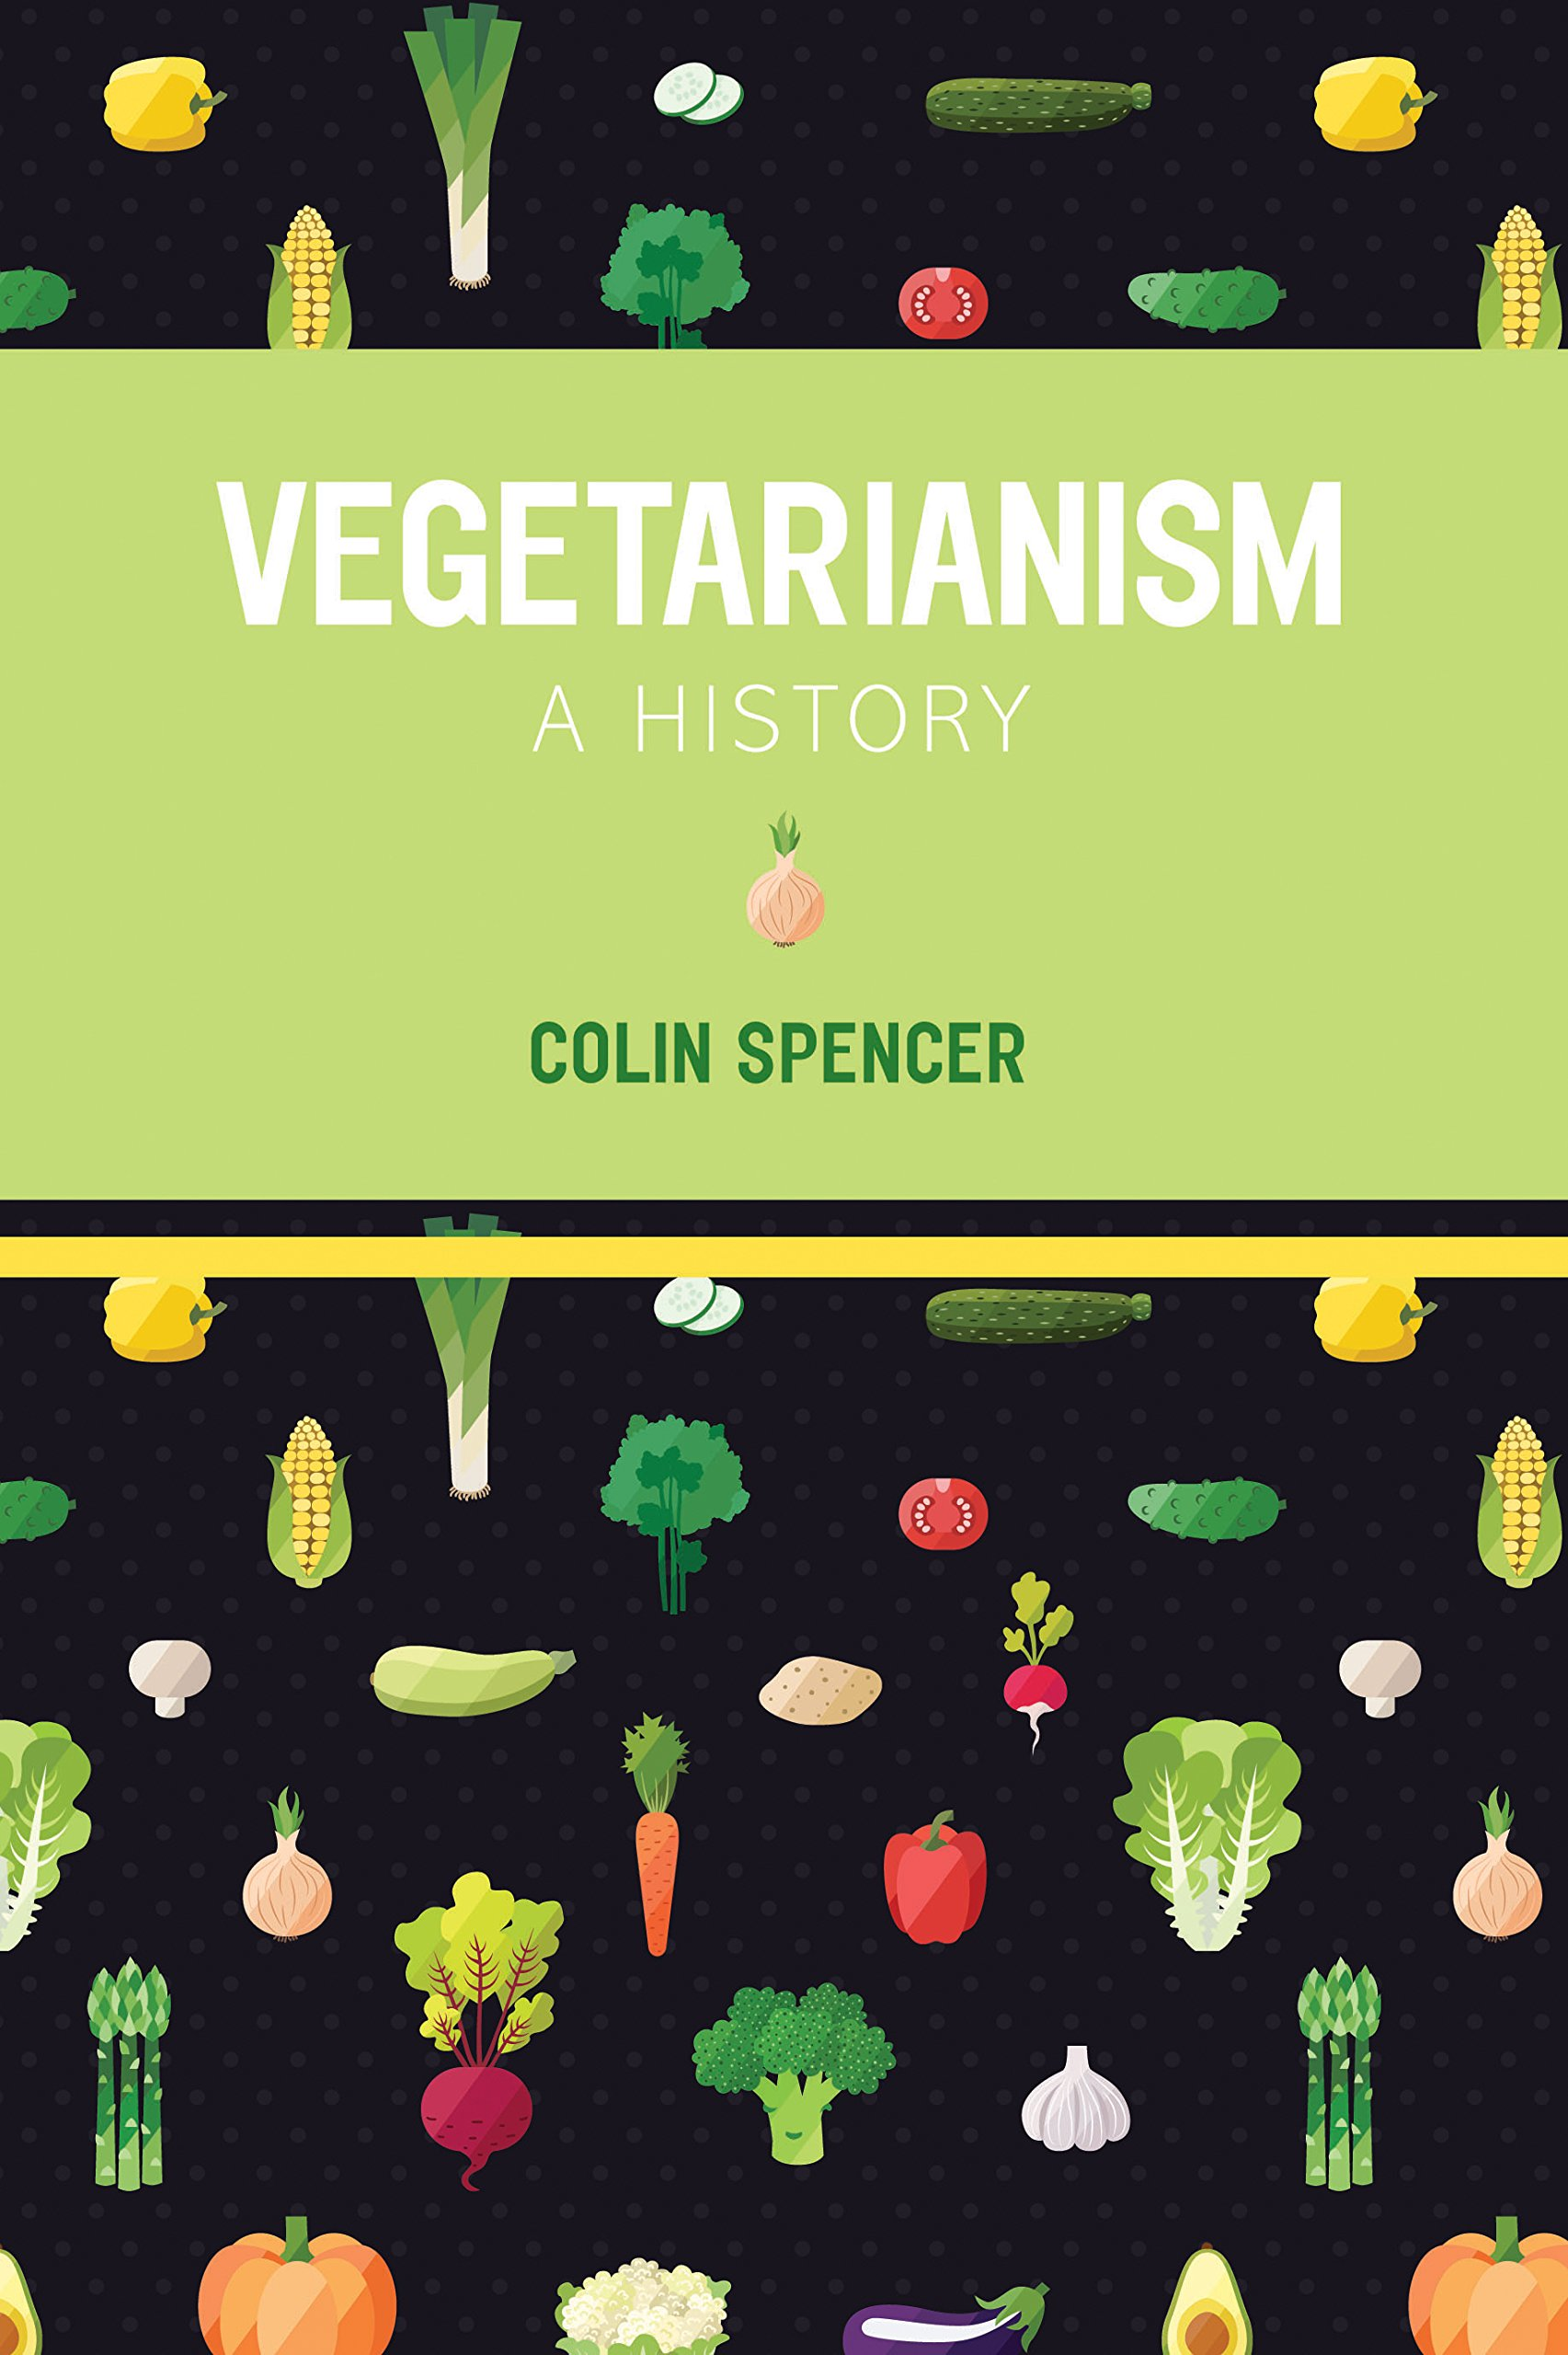 Vegetarianism a history colin spencer 9781910690215 amazon vegetarianism a history colin spencer 9781910690215 amazon books fandeluxe Images